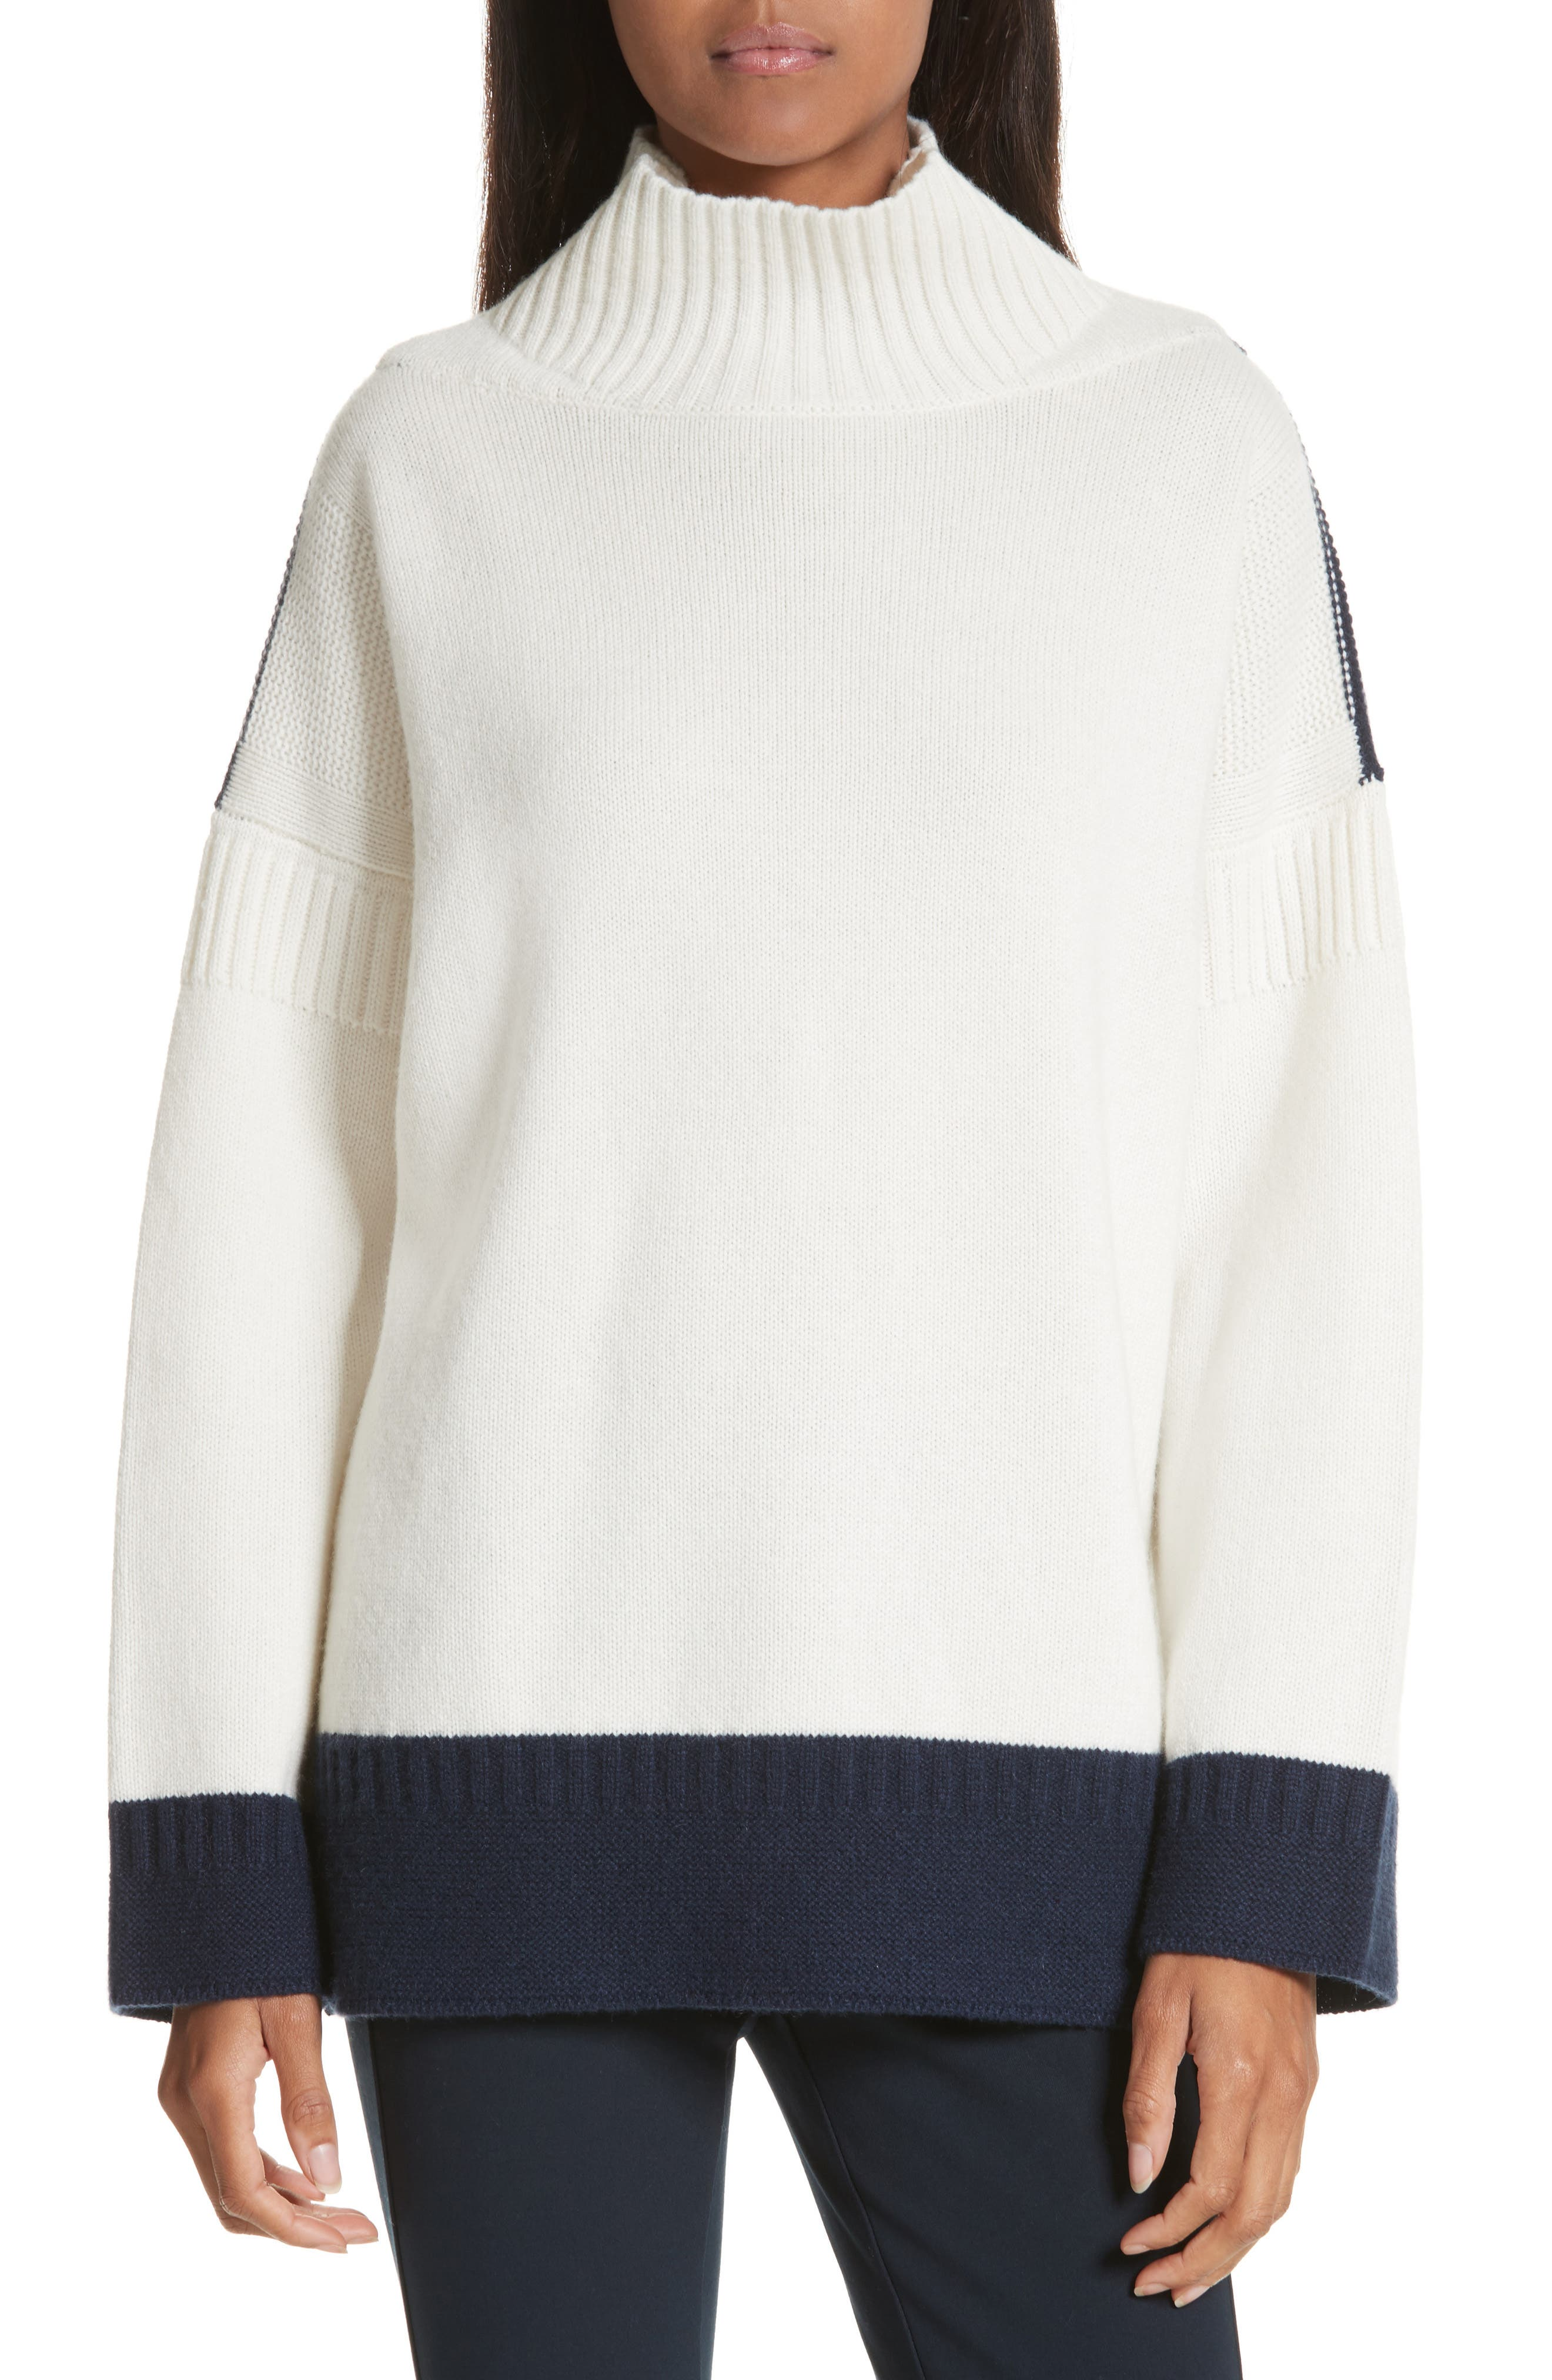 Aubree Funnel Neck Cashmere Sweater,                         Main,                         color, Ivory/Navy